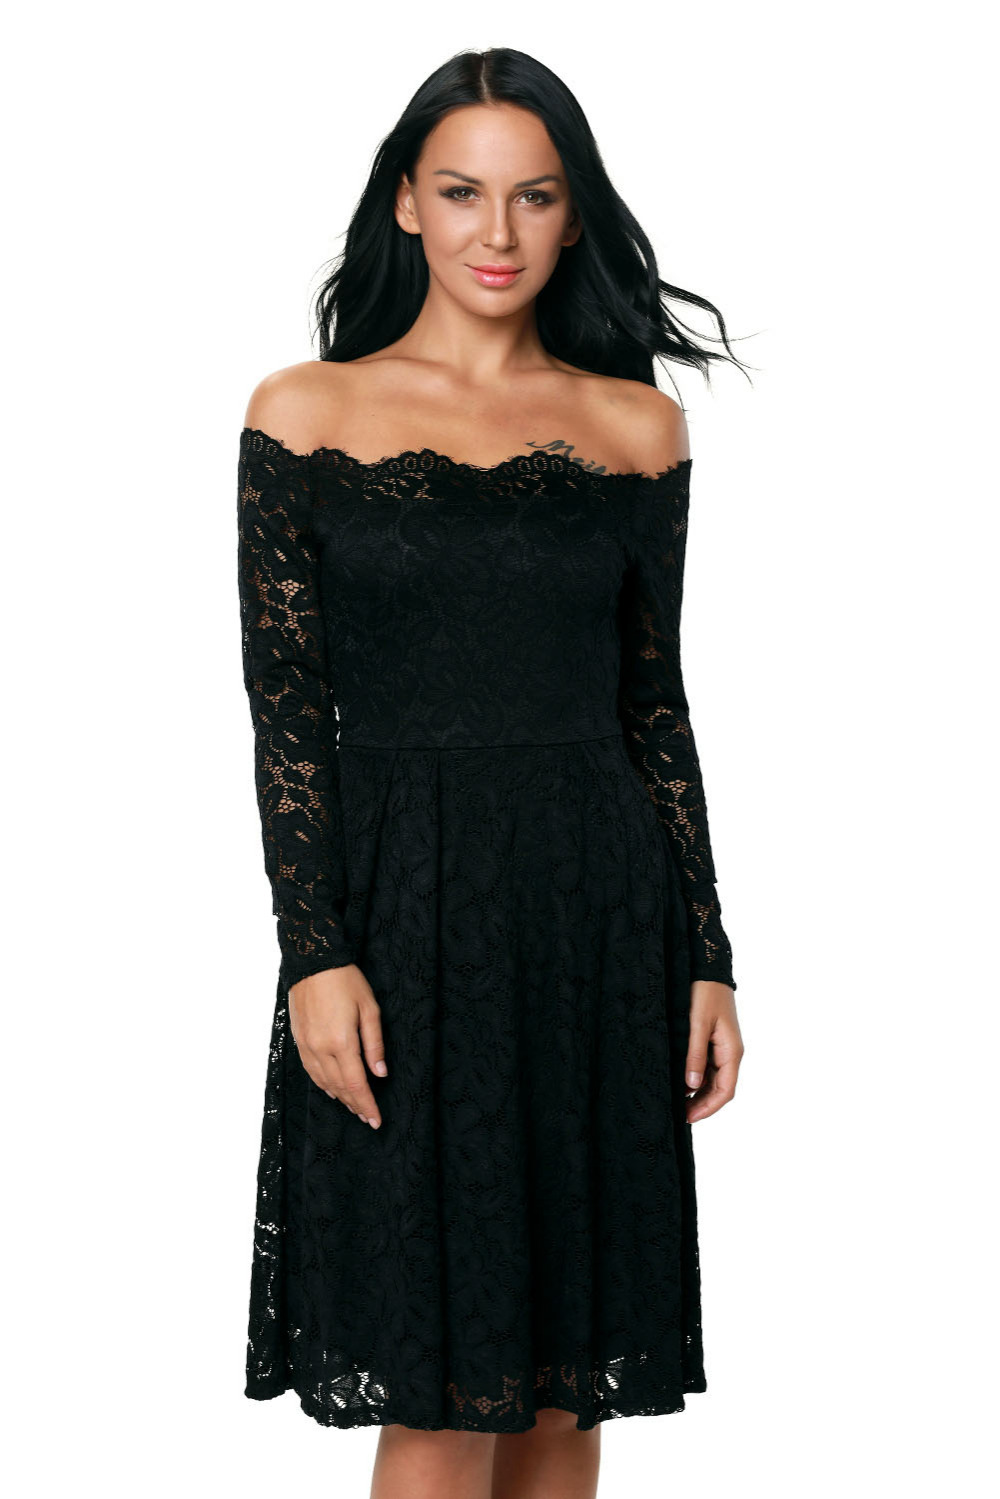 Modern dress casual - New Lady Women S Sexy Club Simple Modern Clubwear Party Casual Mini Long Sleeve Floral Lace Boat Neck Cocktail Swing Dress 61427